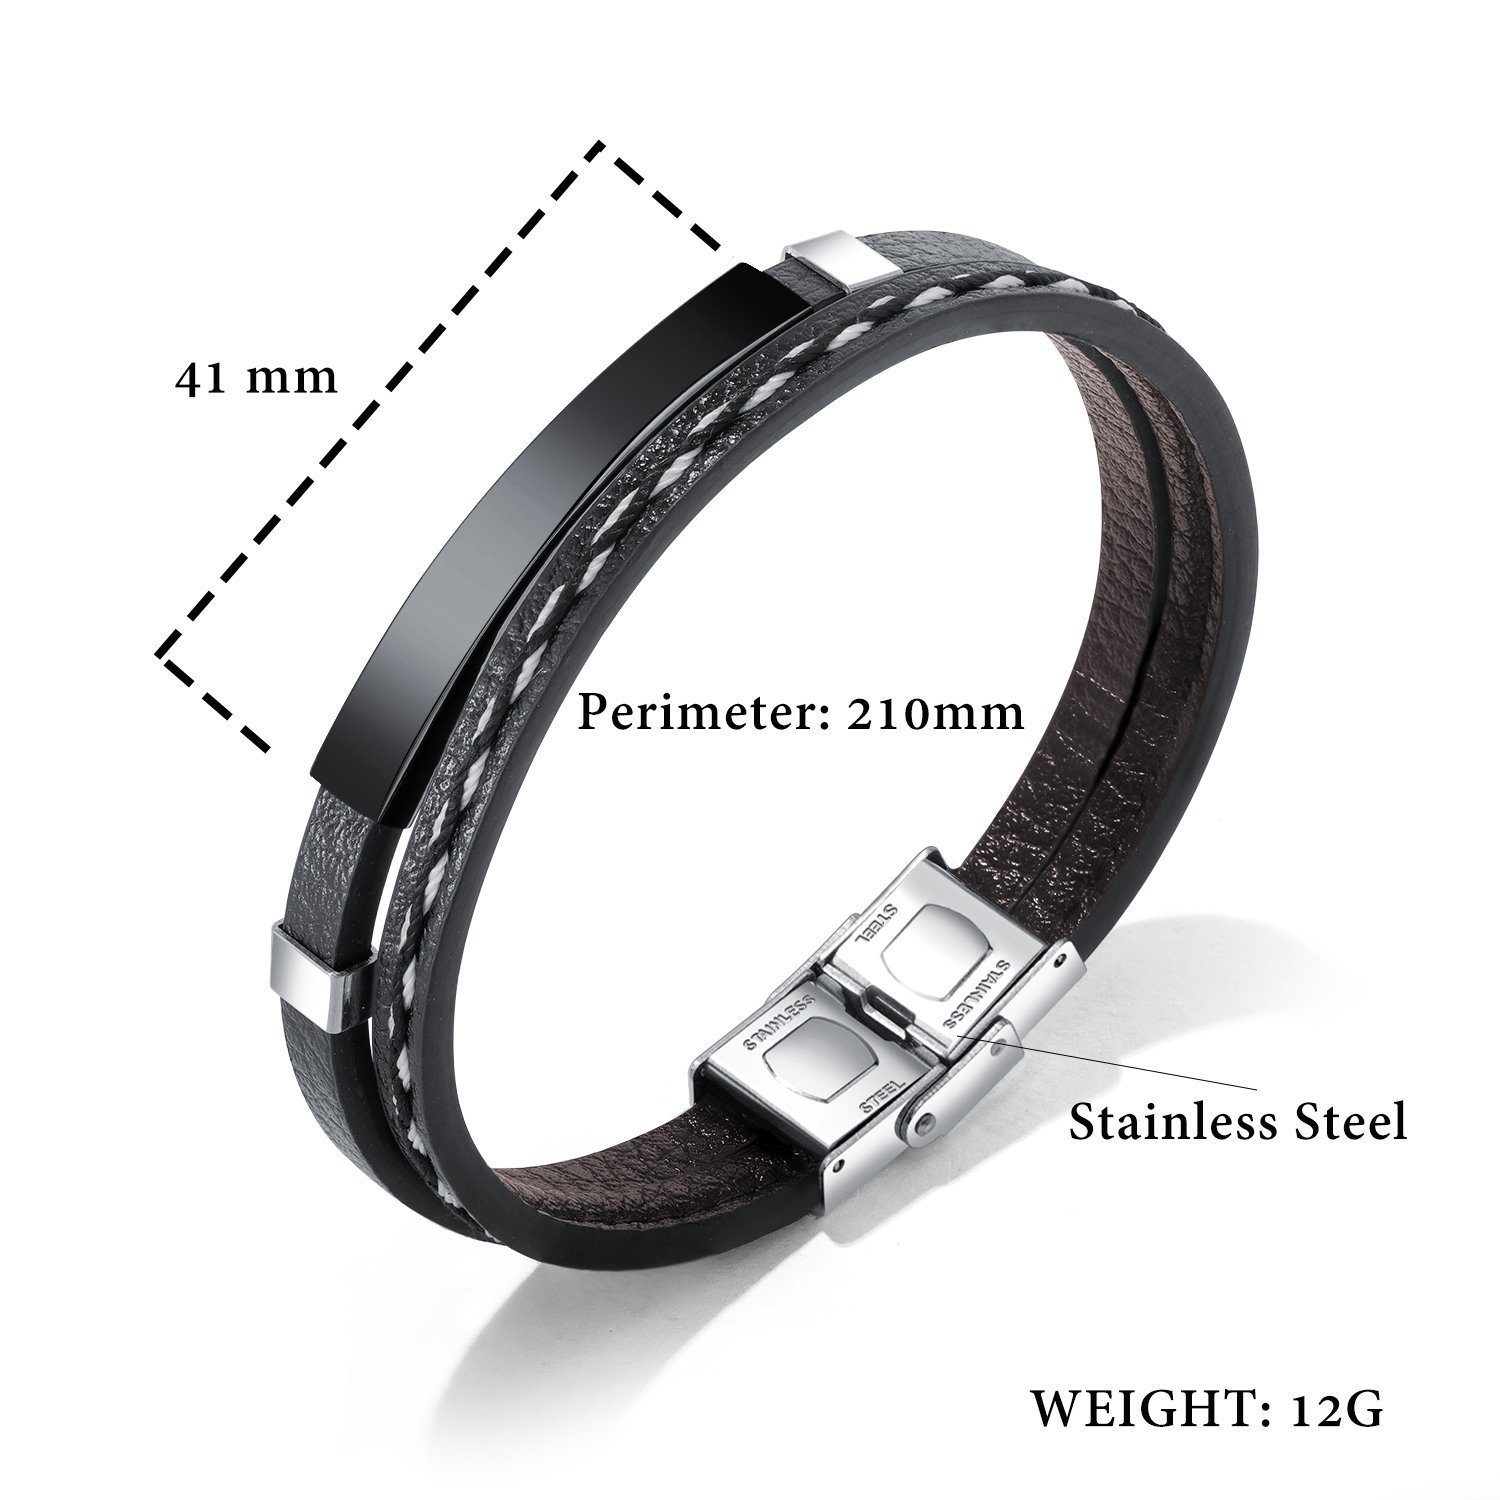 GAGAFEEL Leather Bracelet Braided Rope Cuff Custom Engraved Message Stainless Steel Bangle Unisex Gift (Engraving-Black) by GAGAFEEL (Image #2)